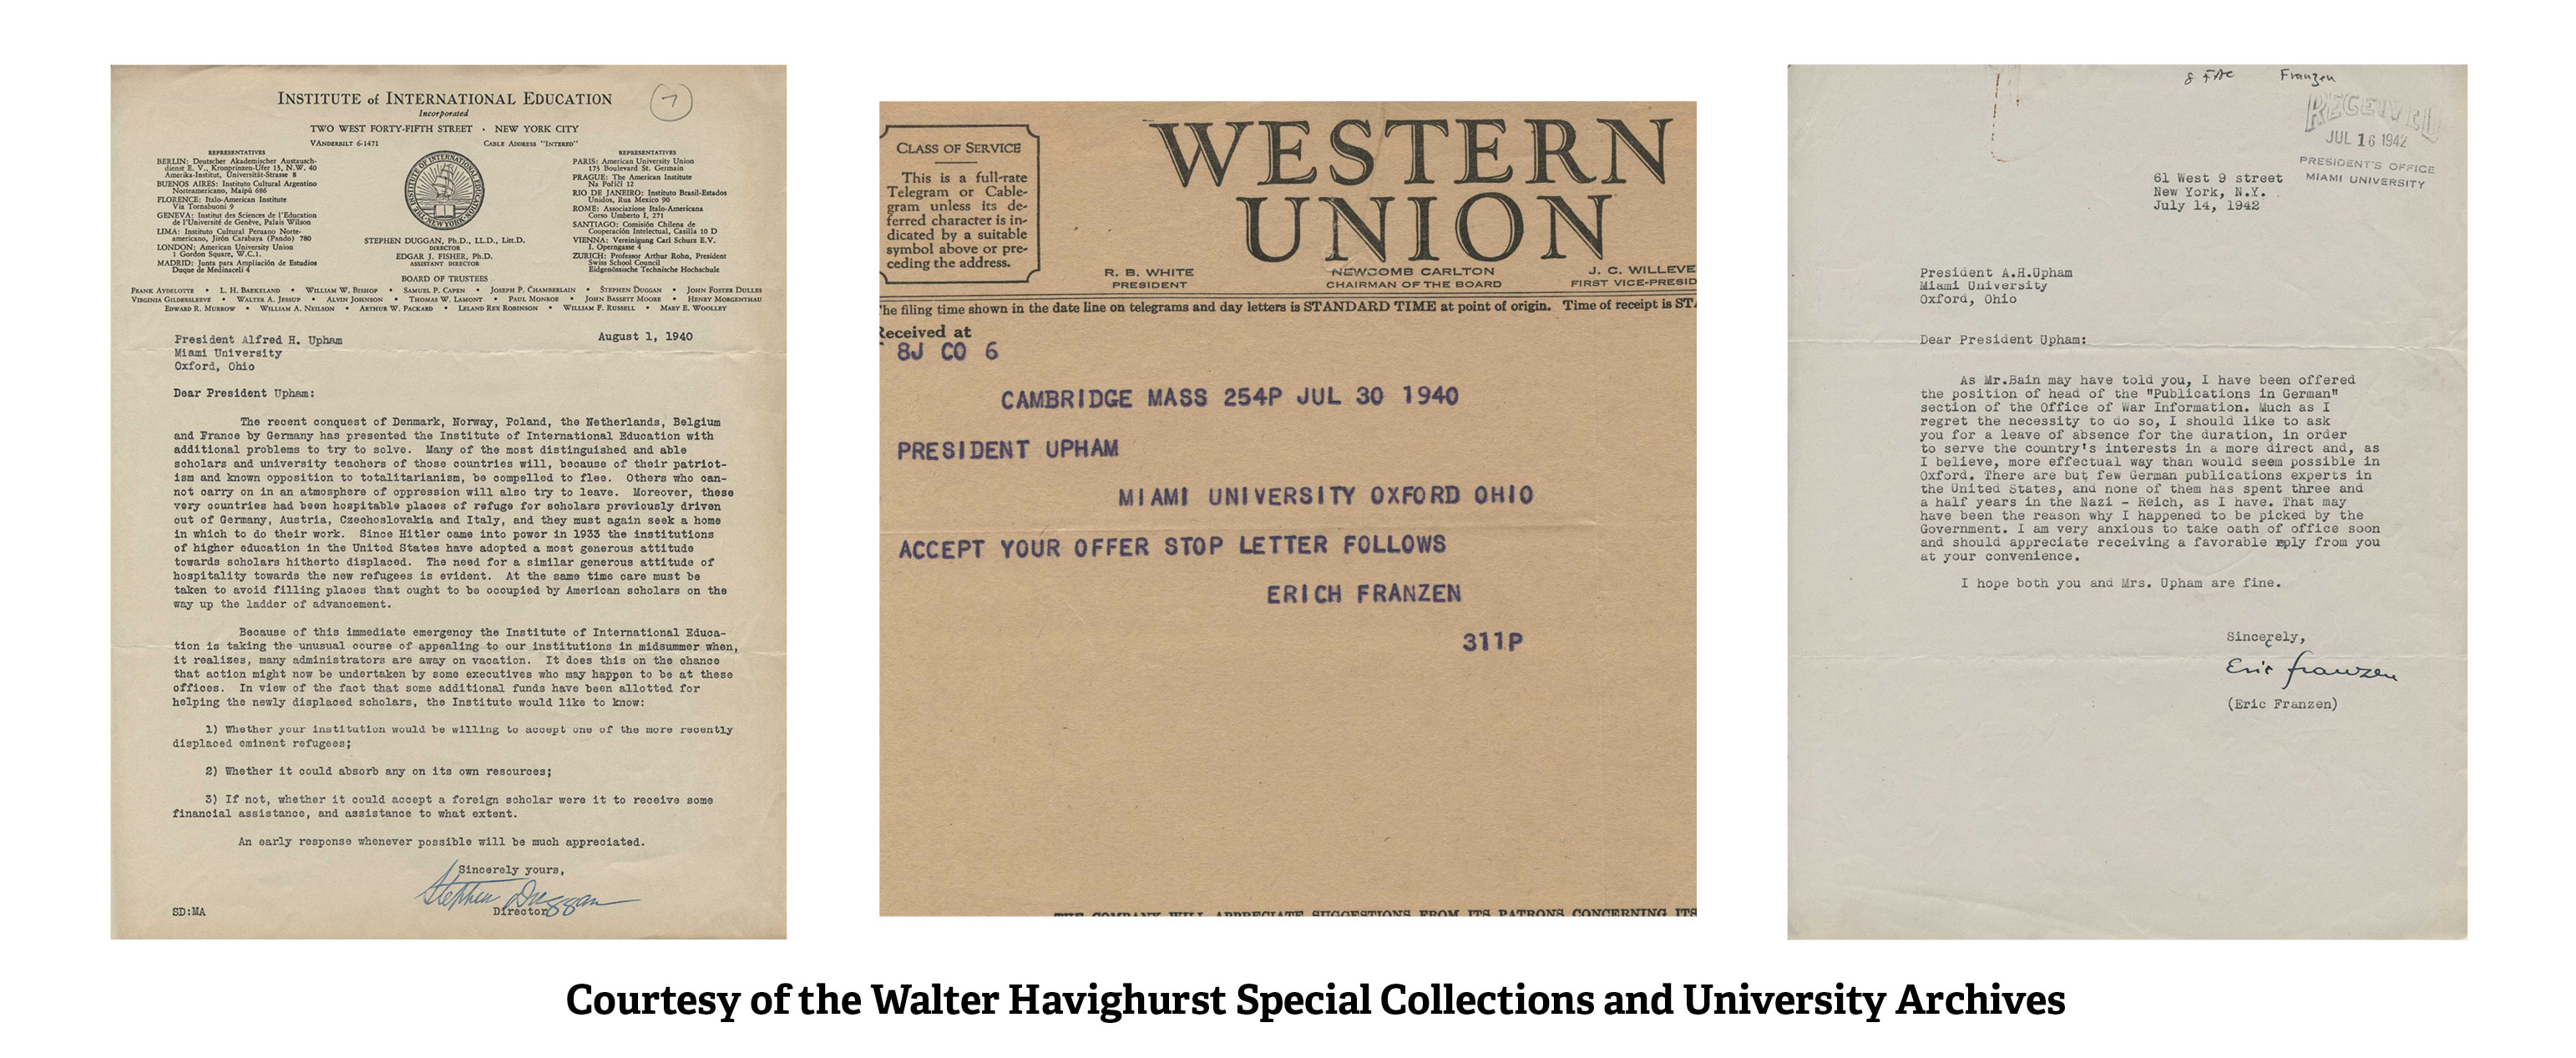 Three images of correspondence are side by side. 1. Letter from the Institute of International Education to President Upham, 1940. 2. Western Union telegraph from Erich Franzen to President Upham, 1940. 3. Letter from Erich Franzen to President Upham, 1942